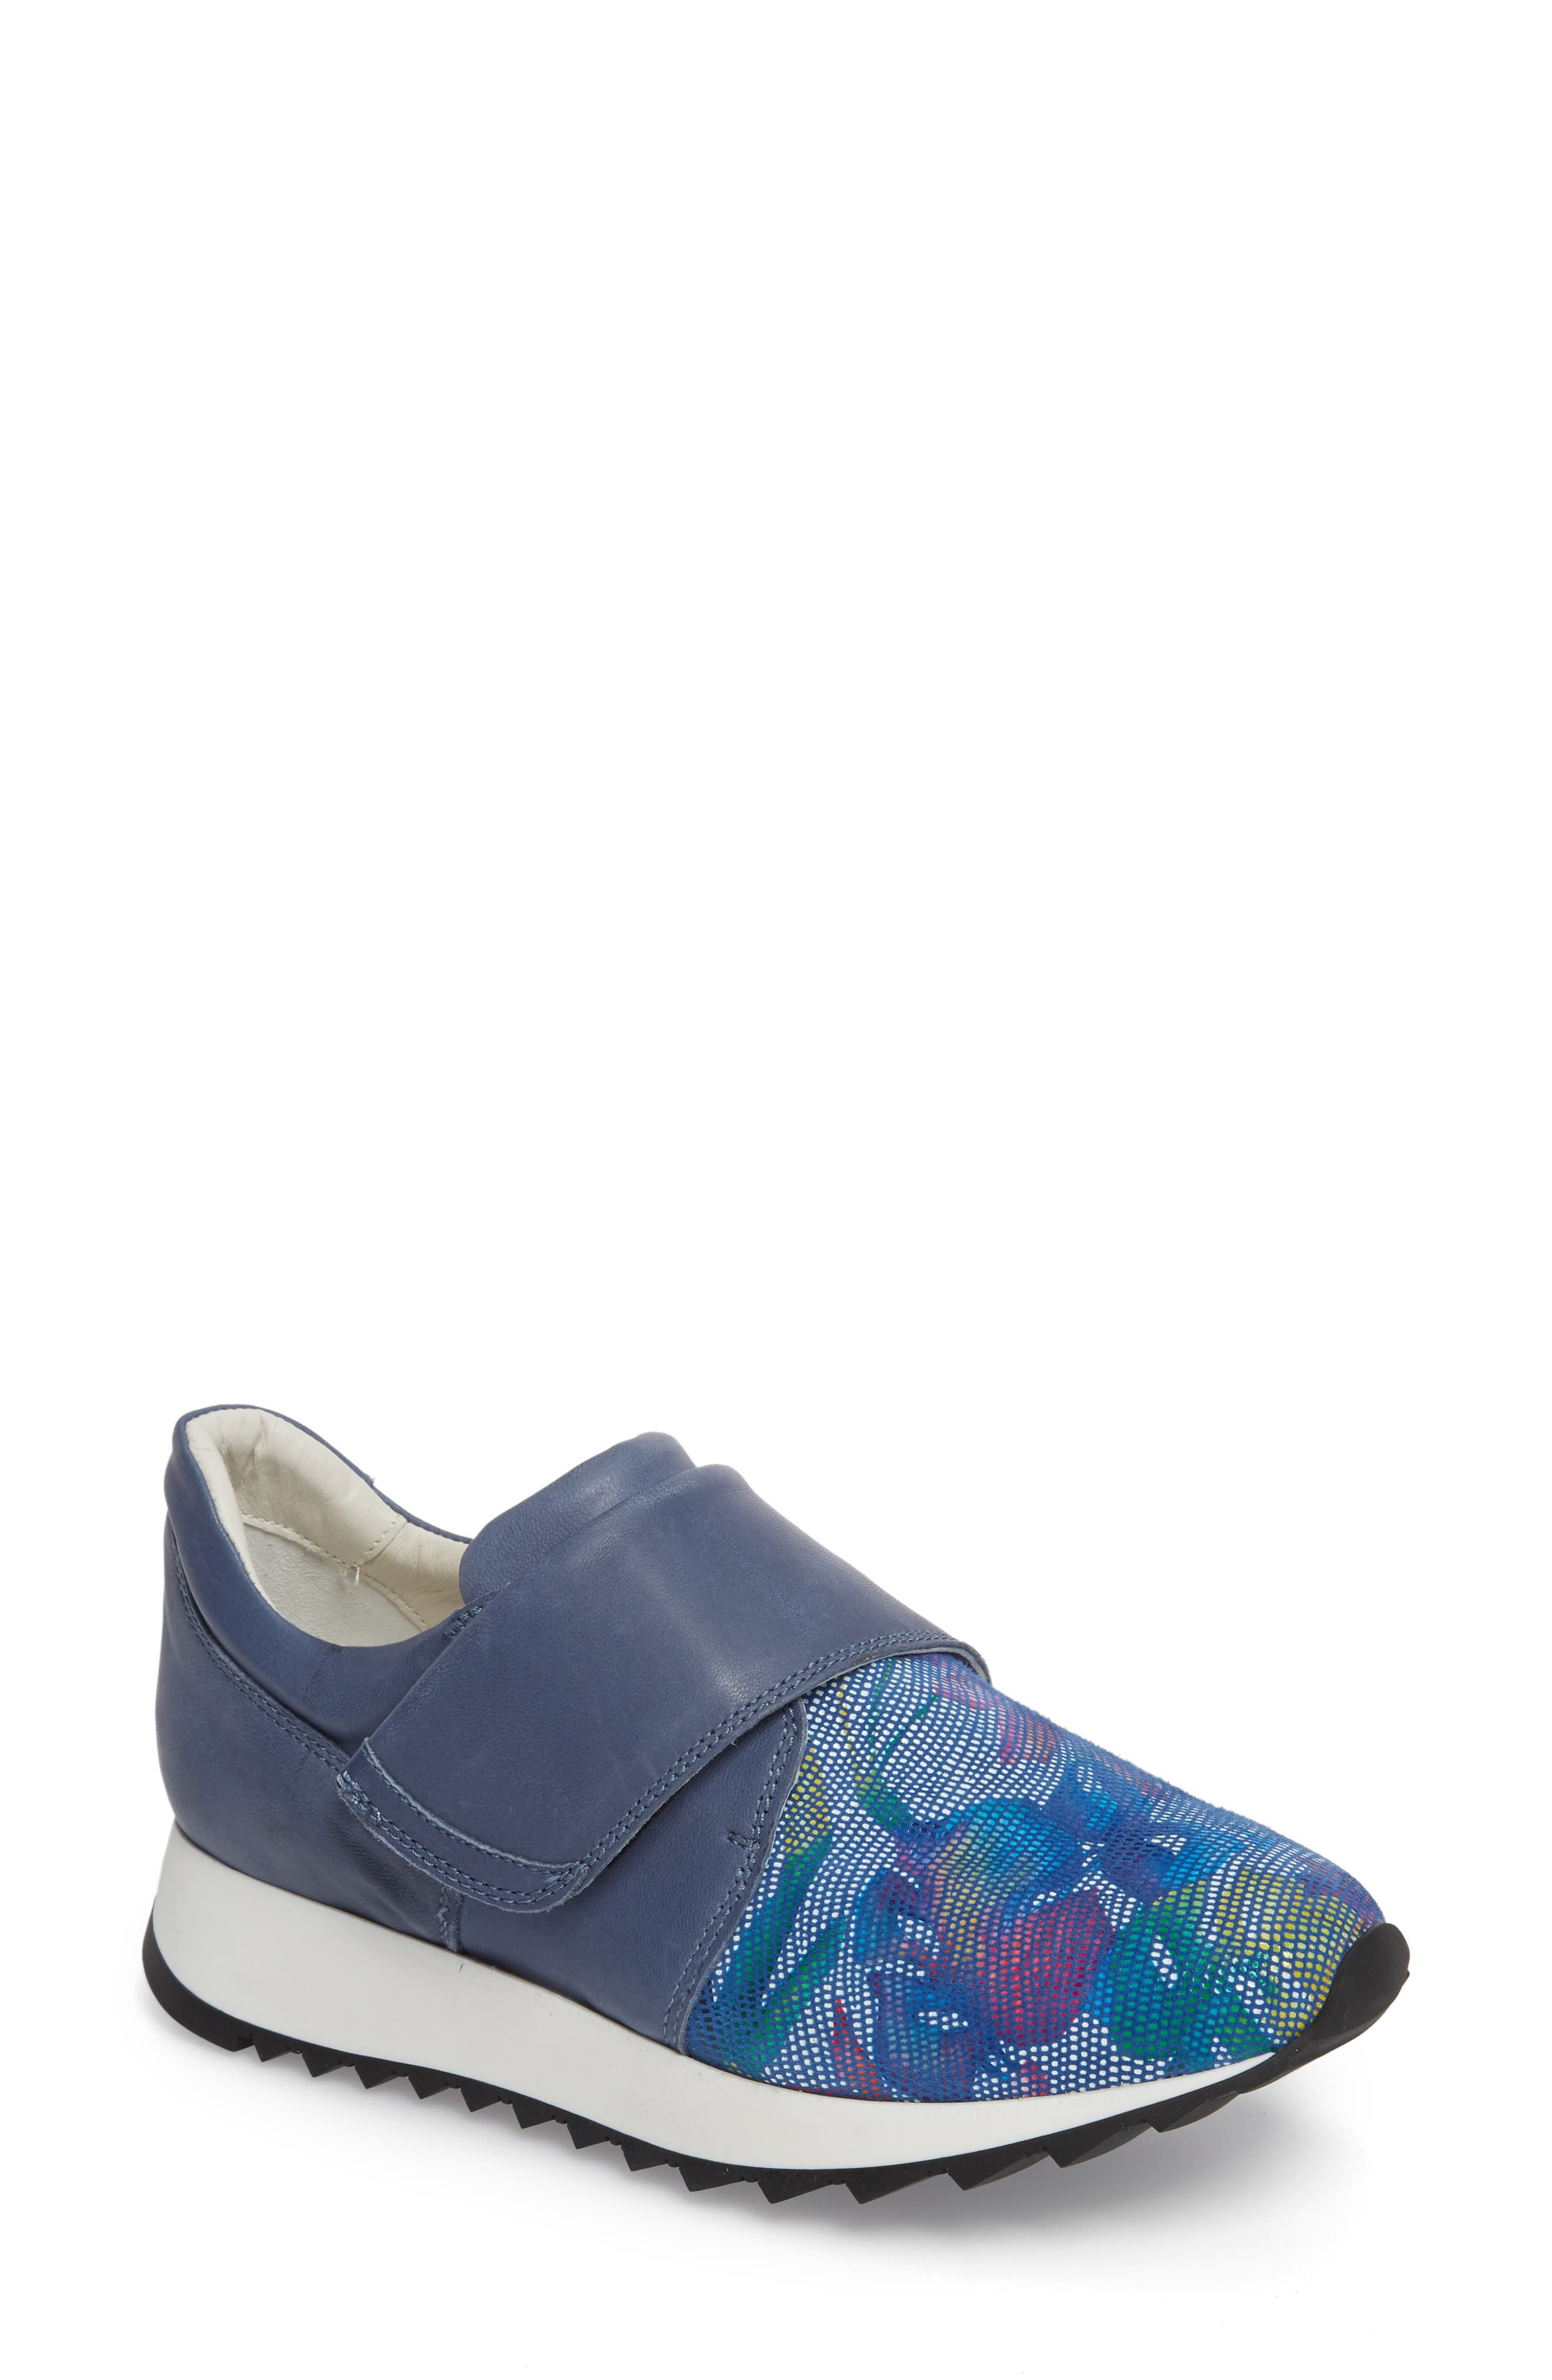 Danza Wedge Sneaker,                             Main thumbnail 1, color,                             Royal Leather